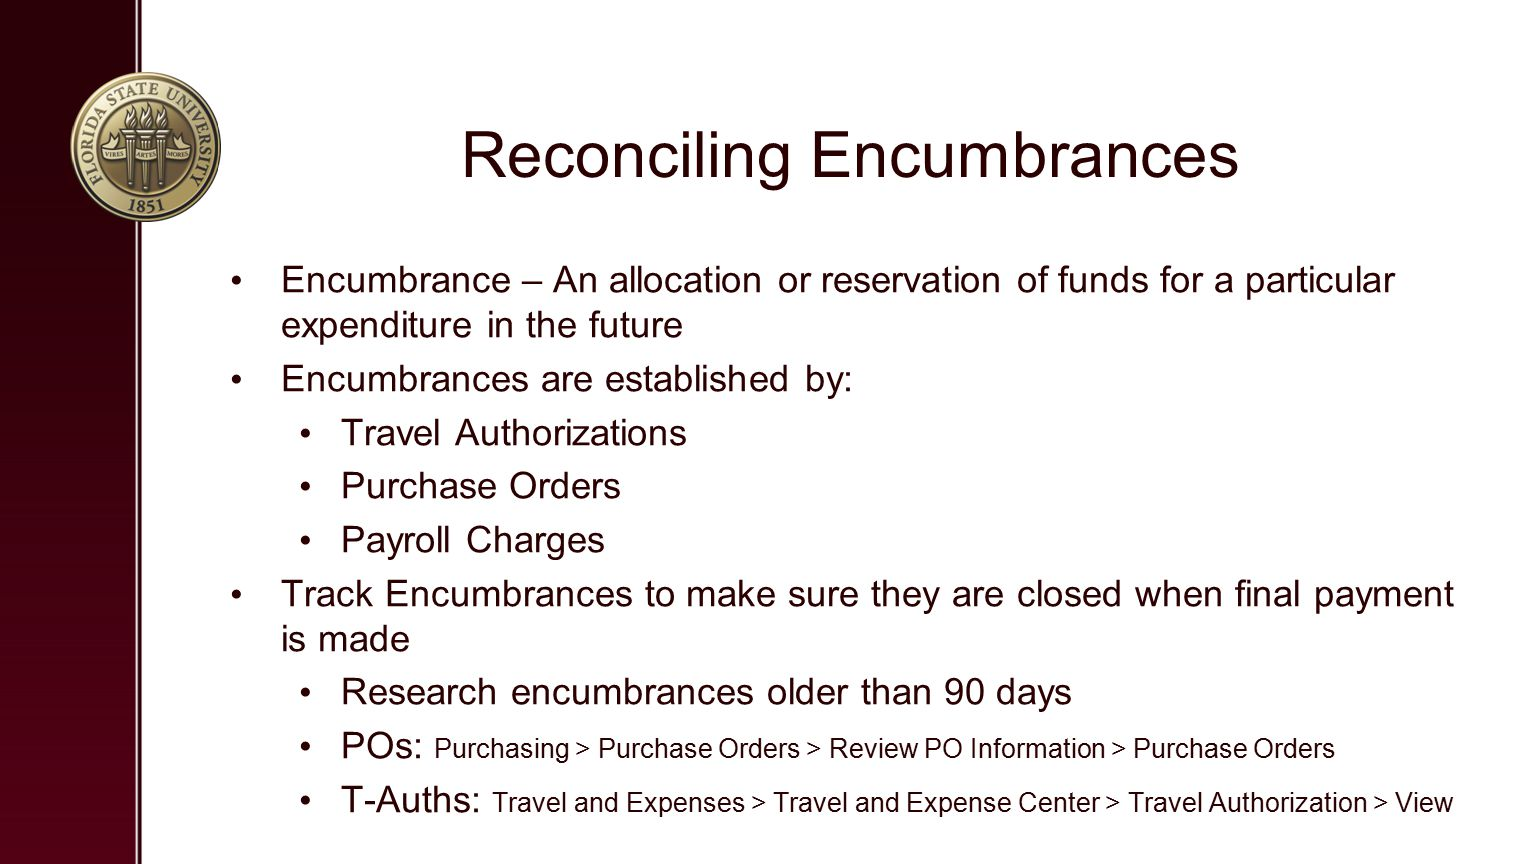 Reconciling Encumbrances Encumbrance – An allocation or reservation of funds for a particular expenditure in the future Encumbrances are established by: Travel Authorizations Purchase Orders Payroll Charges Track Encumbrances to make sure they are closed when final payment is made Research encumbrances older than 90 days POs: Purchasing > Purchase Orders > Review PO Information > Purchase Orders T-Auths: Travel and Expenses > Travel and Expense Center > Travel Authorization > View